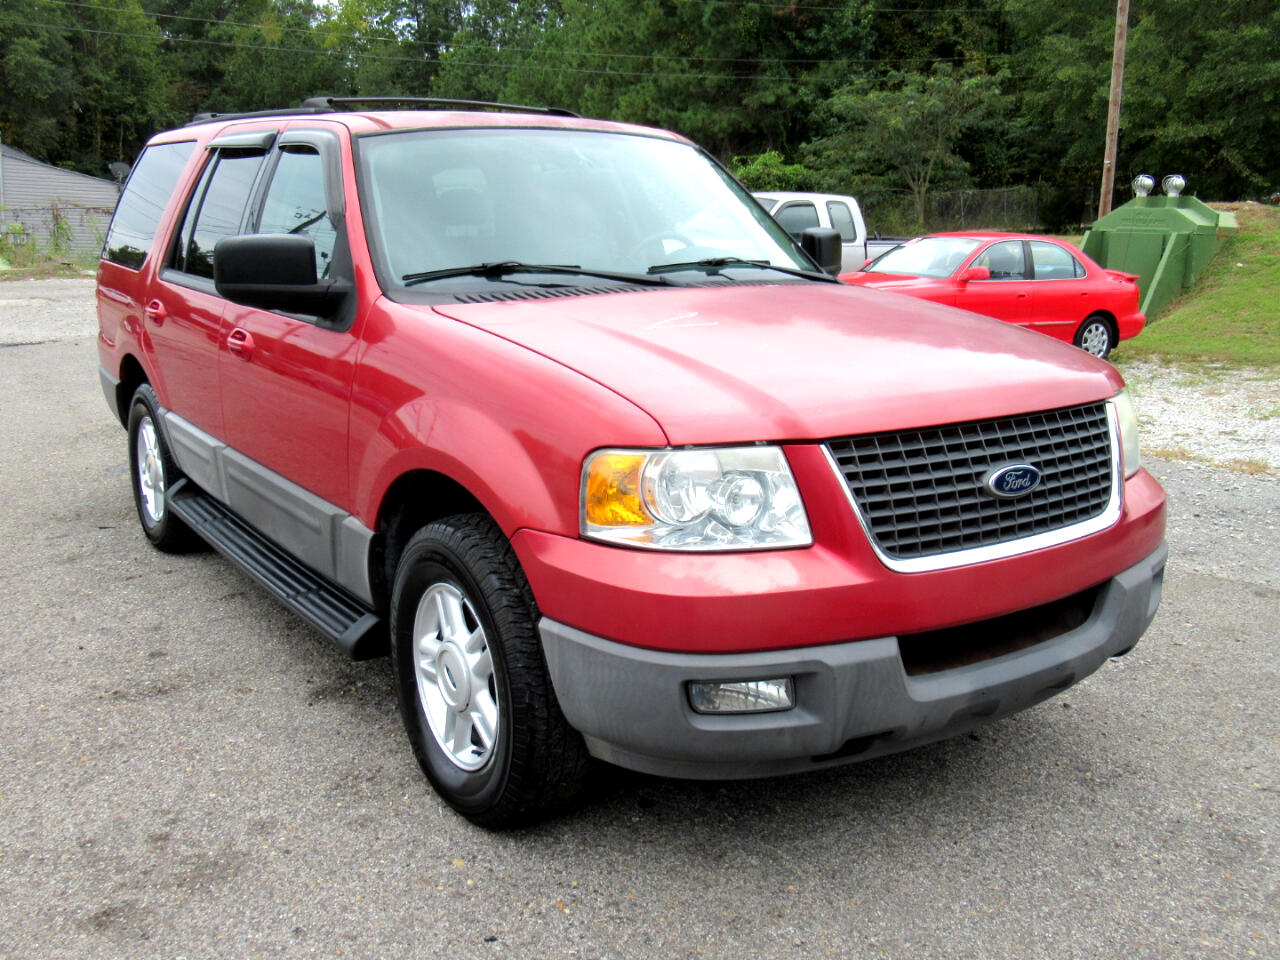 Ford Expedition 5.4L XLT Premium 2003